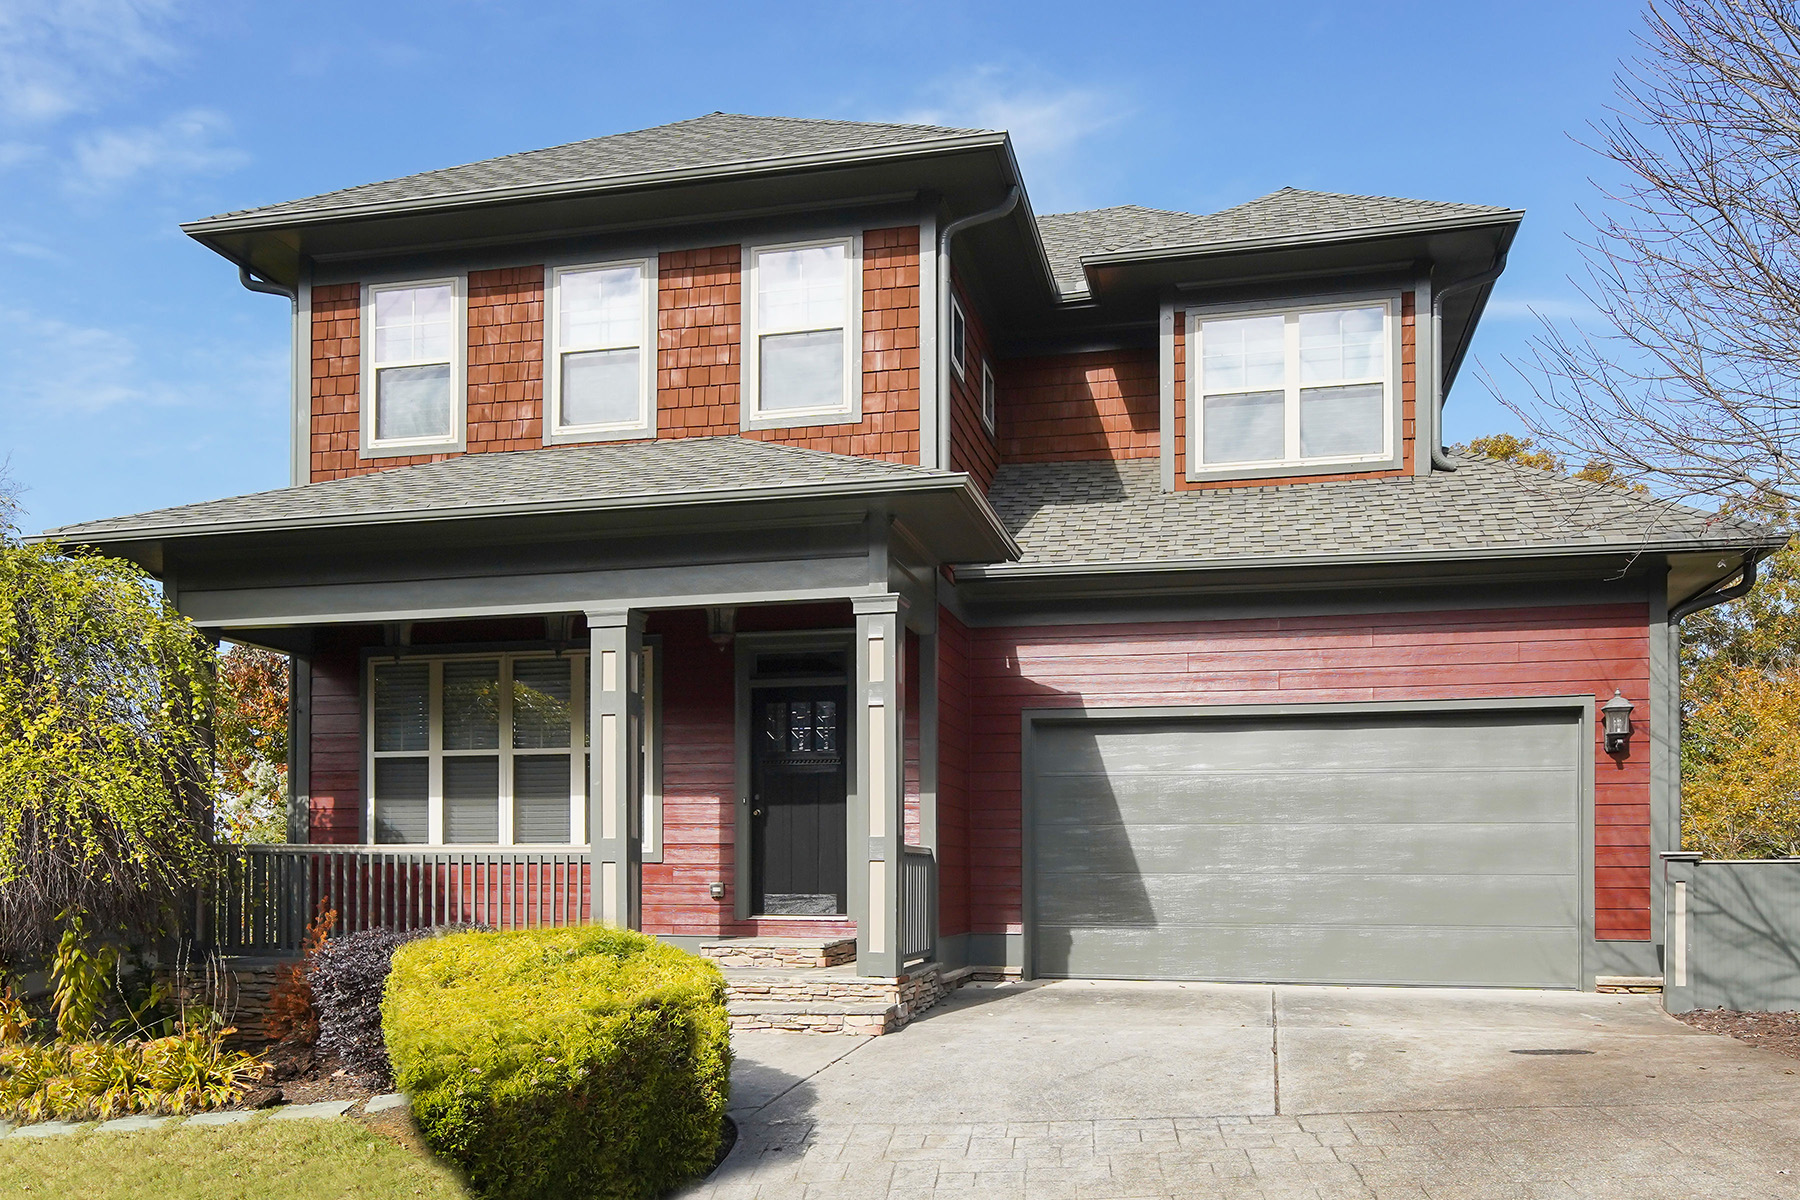 Single Family Home for Sale at Lovely Craftsman Home Located In Quaint Gated Community 2793 Prado Ln Marietta, Georgia 30066 United States